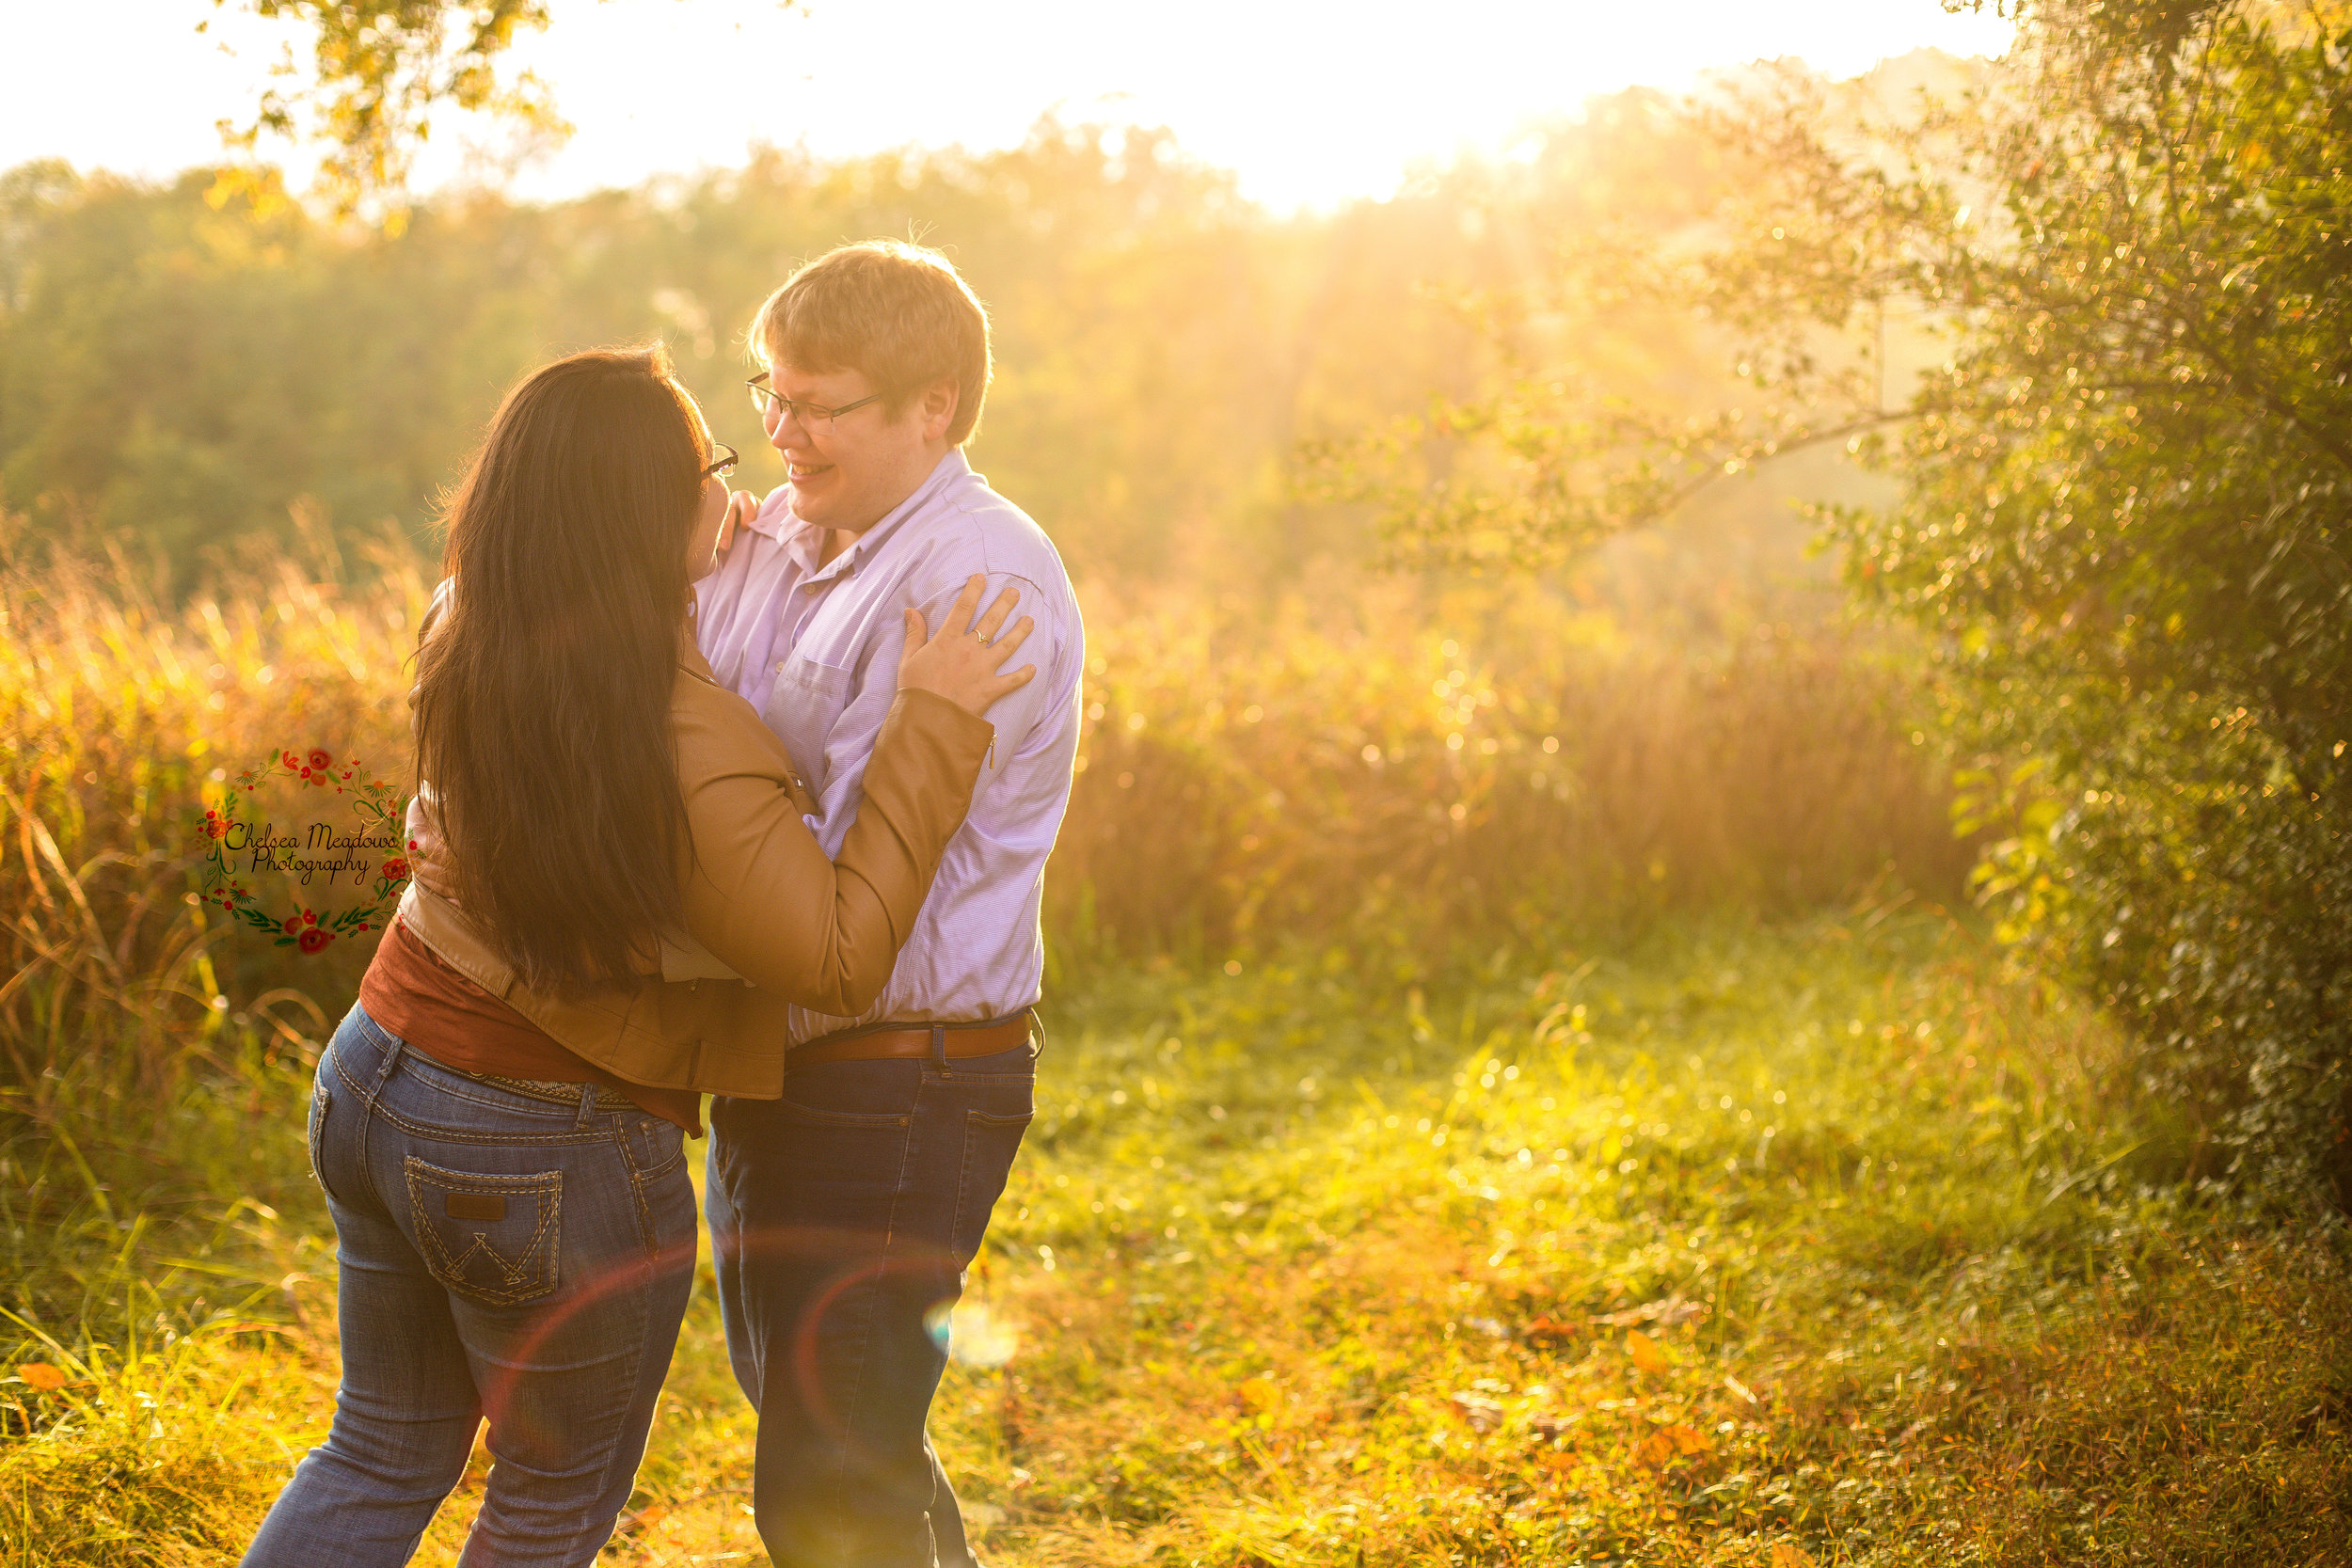 Ashley & Alex Engagement Session - Nashville Couple Photographer - Chelsea Meadows Photography (74).jpg